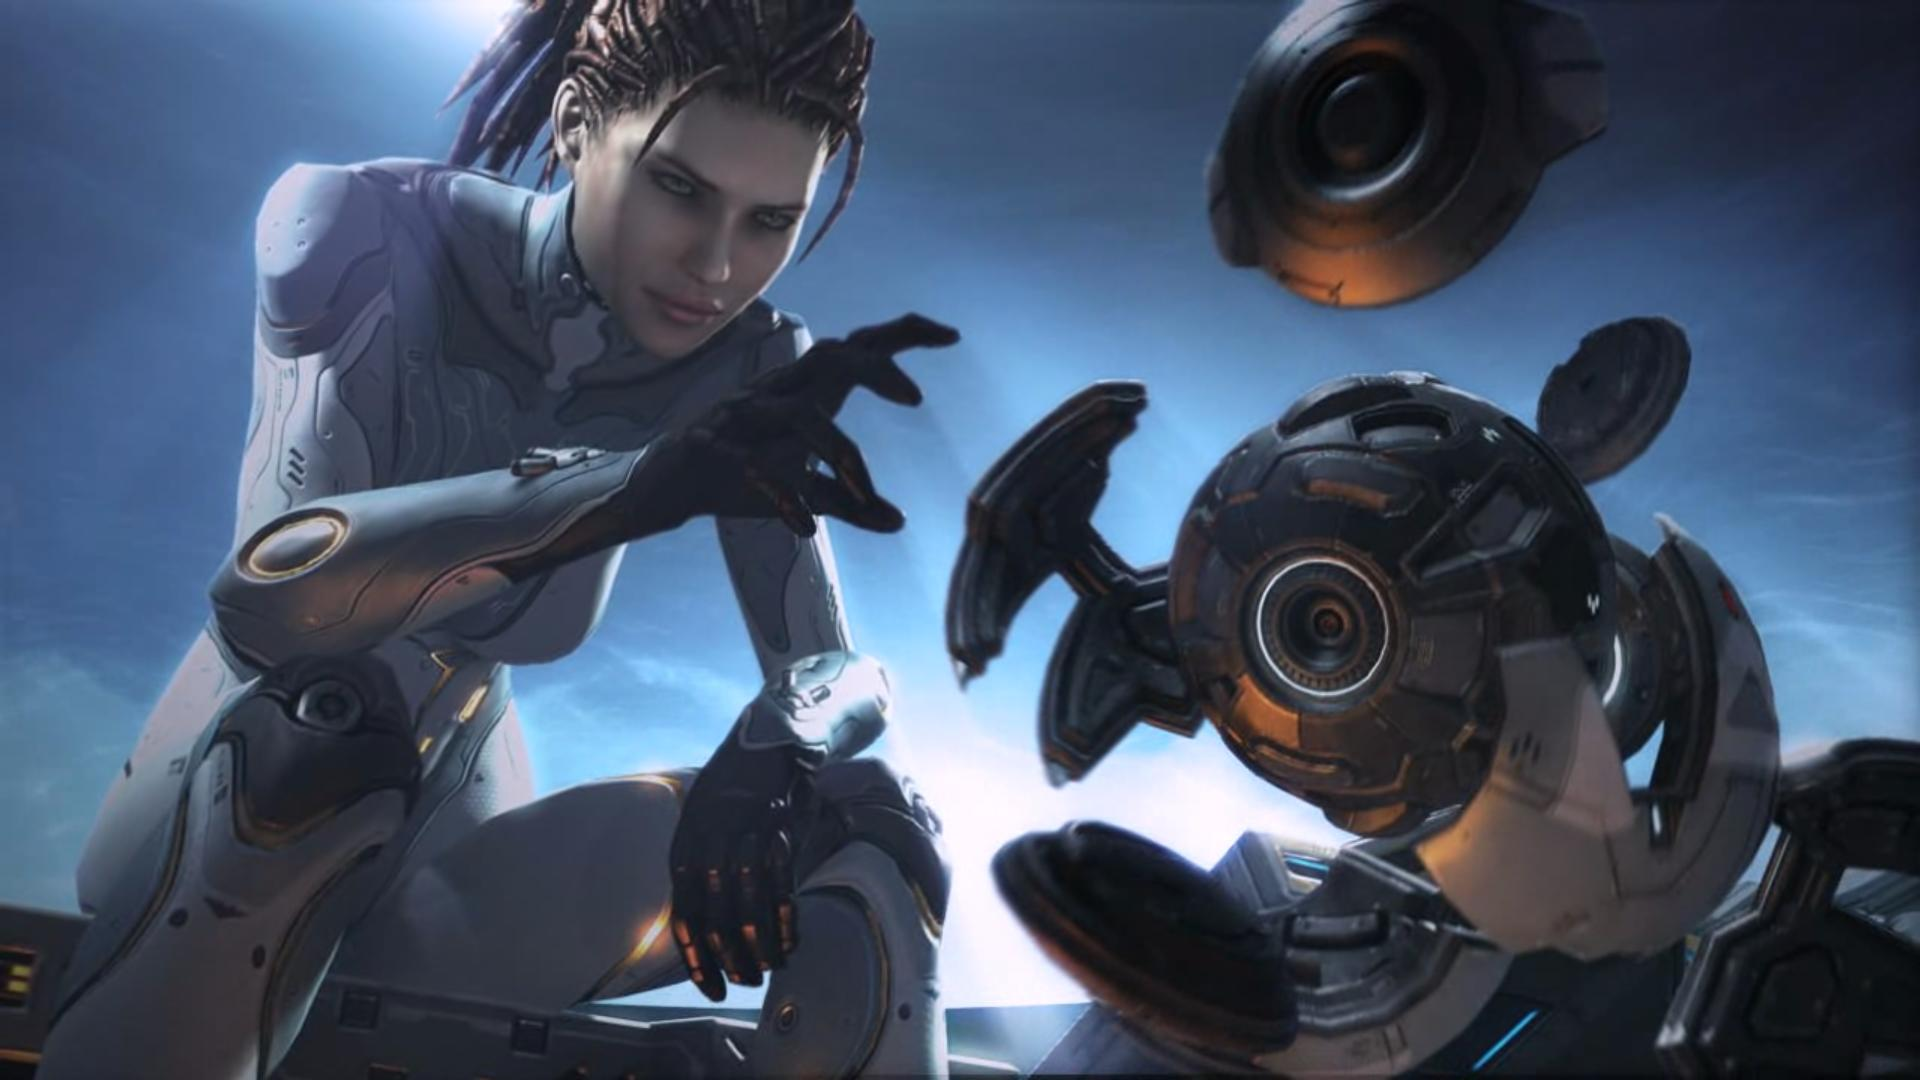 Awesome Wallpapers Girl Sniper Starcraft Ii Heart Of The Swarm Benchmarked